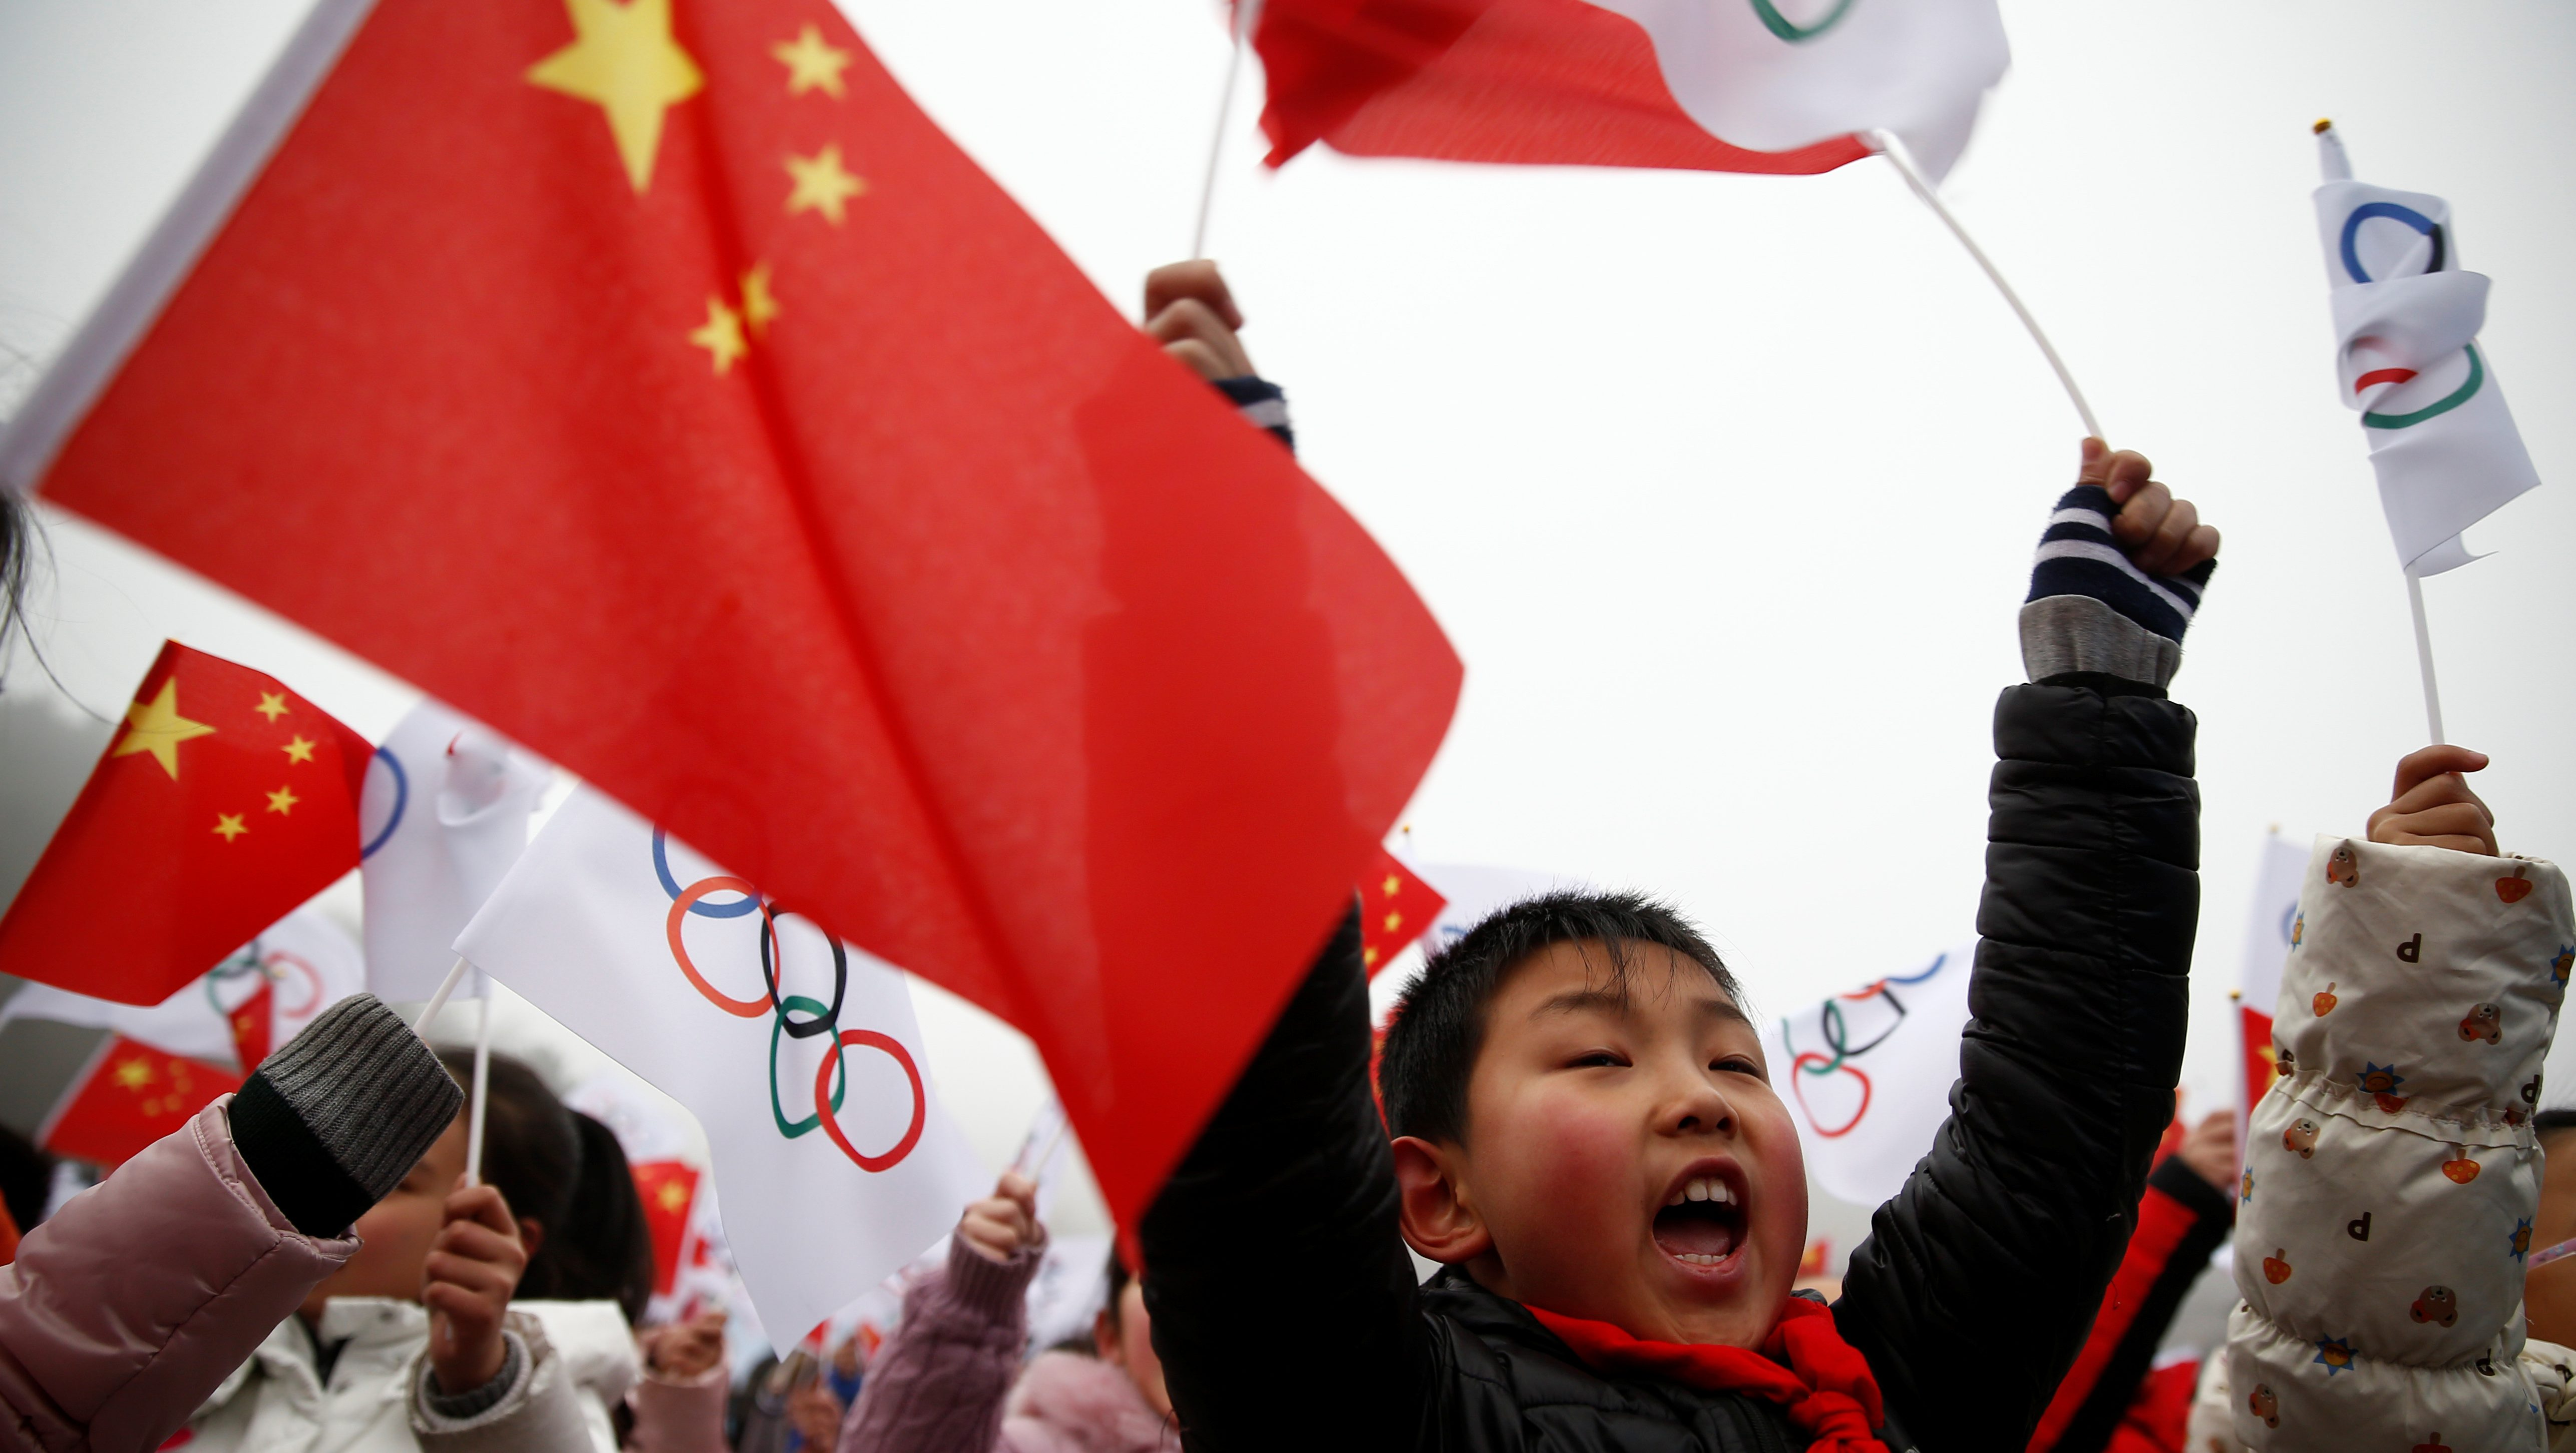 Children wave Chinese and Olympic flags during a ceremony marking the start of the tour of the Olympic flag leading up to the Beijing 2022 Olympic and Paralympic Winter Games at the Badaling section of the Great Wall in Yanqing district in Beijing, China, February 27, 2018.